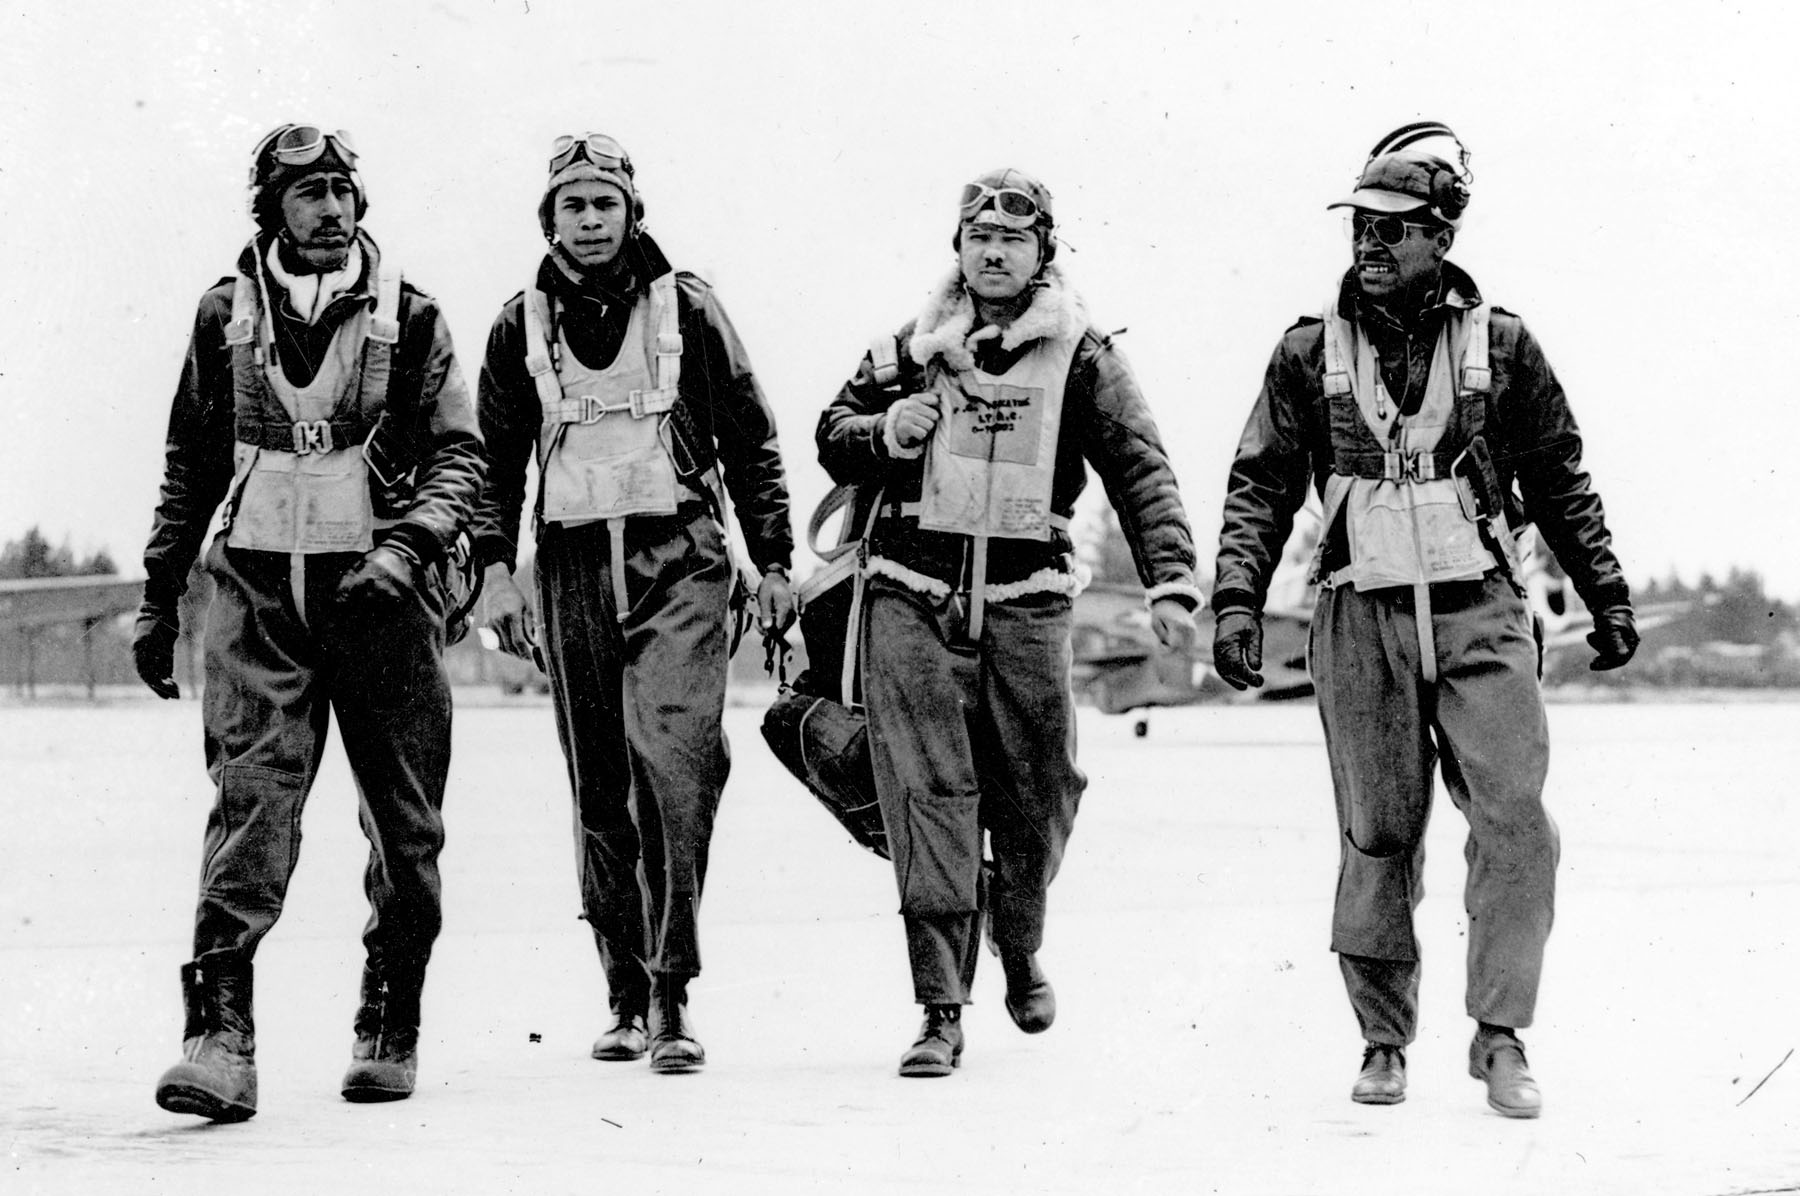 tuskegee airmen essay tuskegee airmen essay atsl ip tuskegee photo essay tuskegee airmen gt u s air force gt article displayphoto essay tuskegee airmen